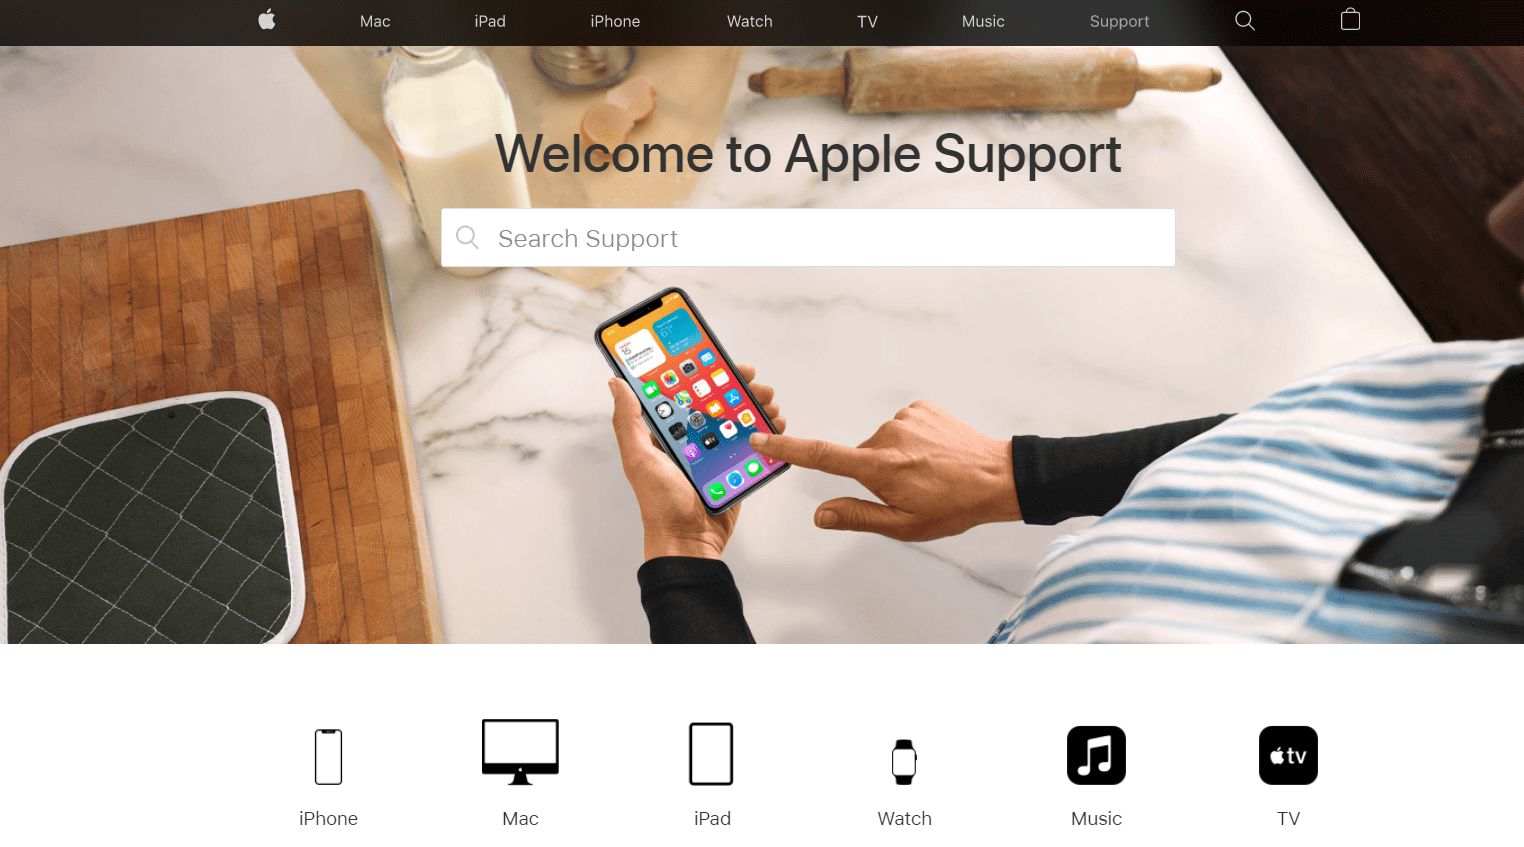 Apple user documentation example